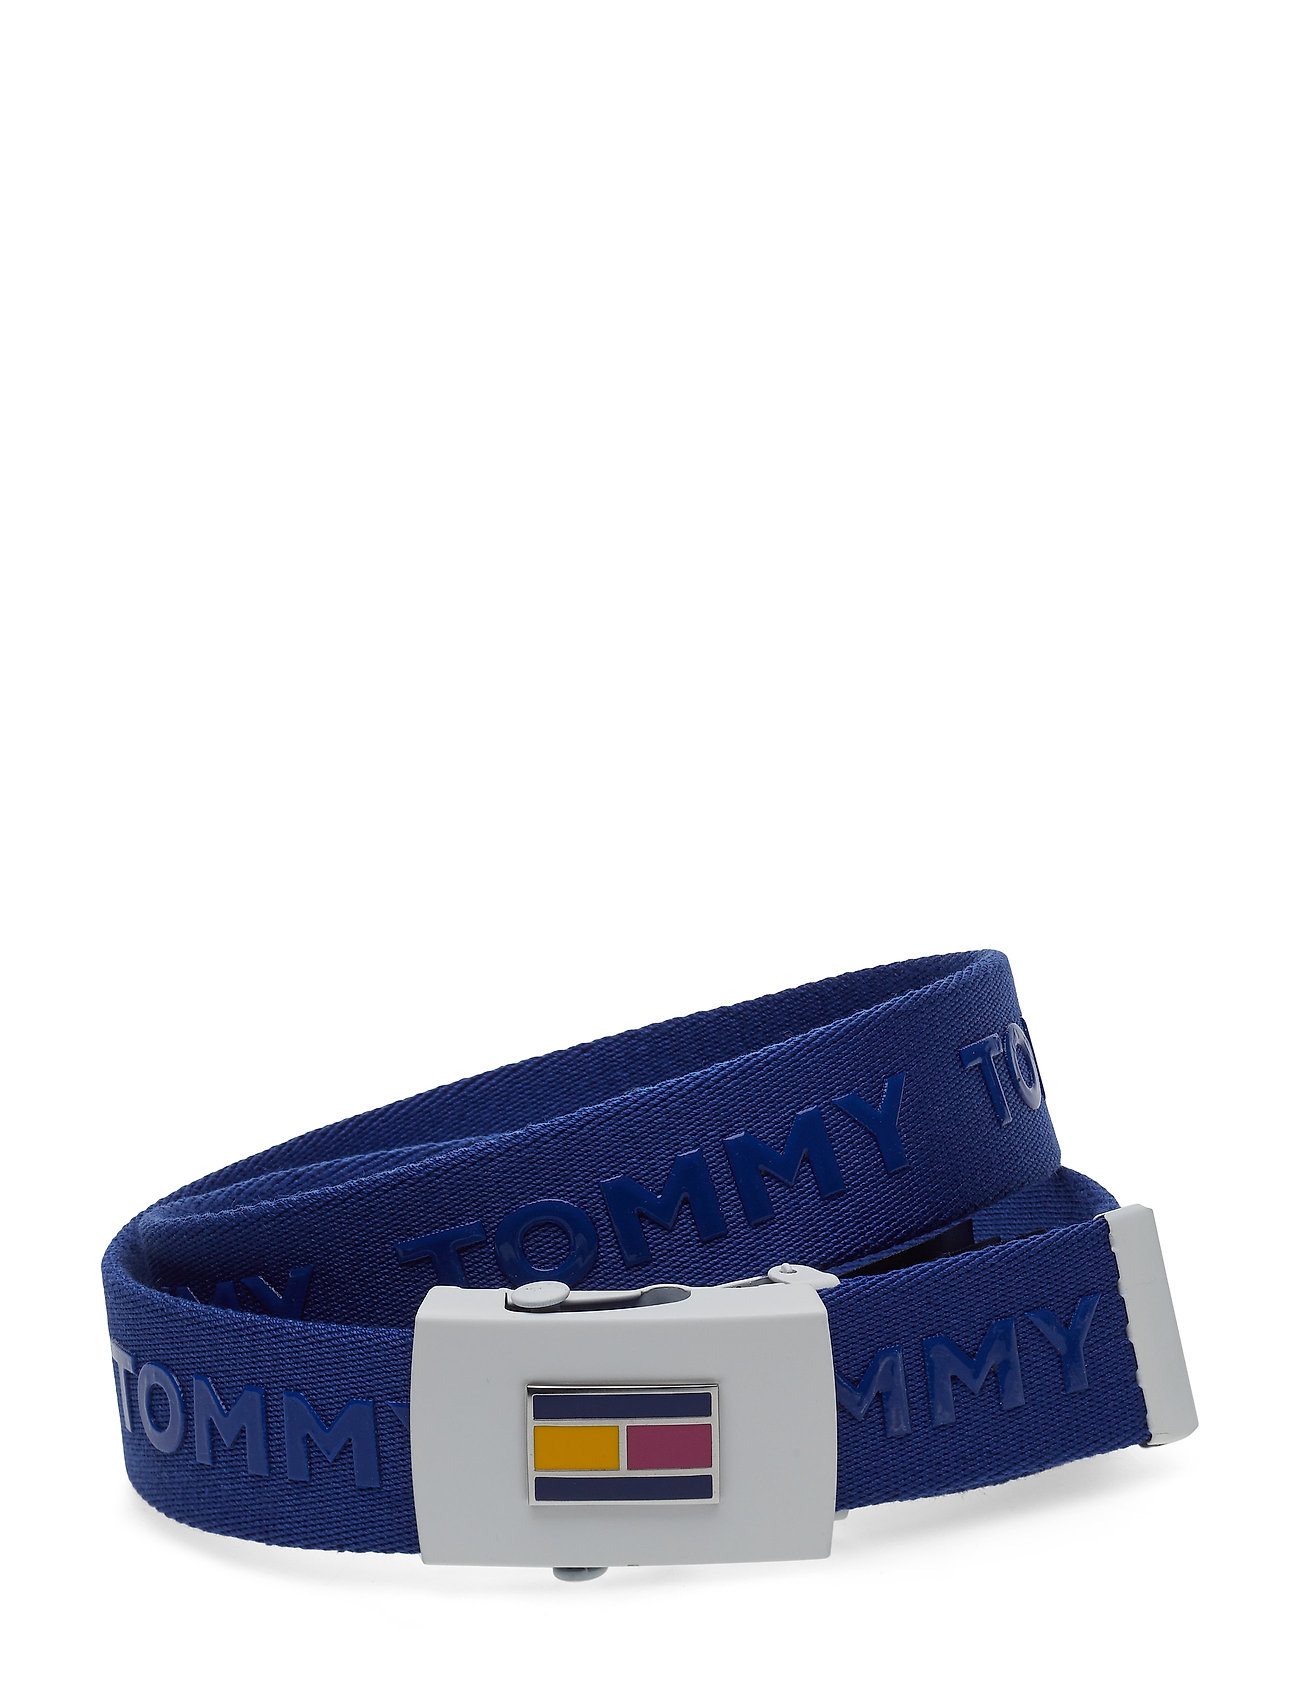 Tommy Hilfiger KIDS WEBBING BELT - BLUE